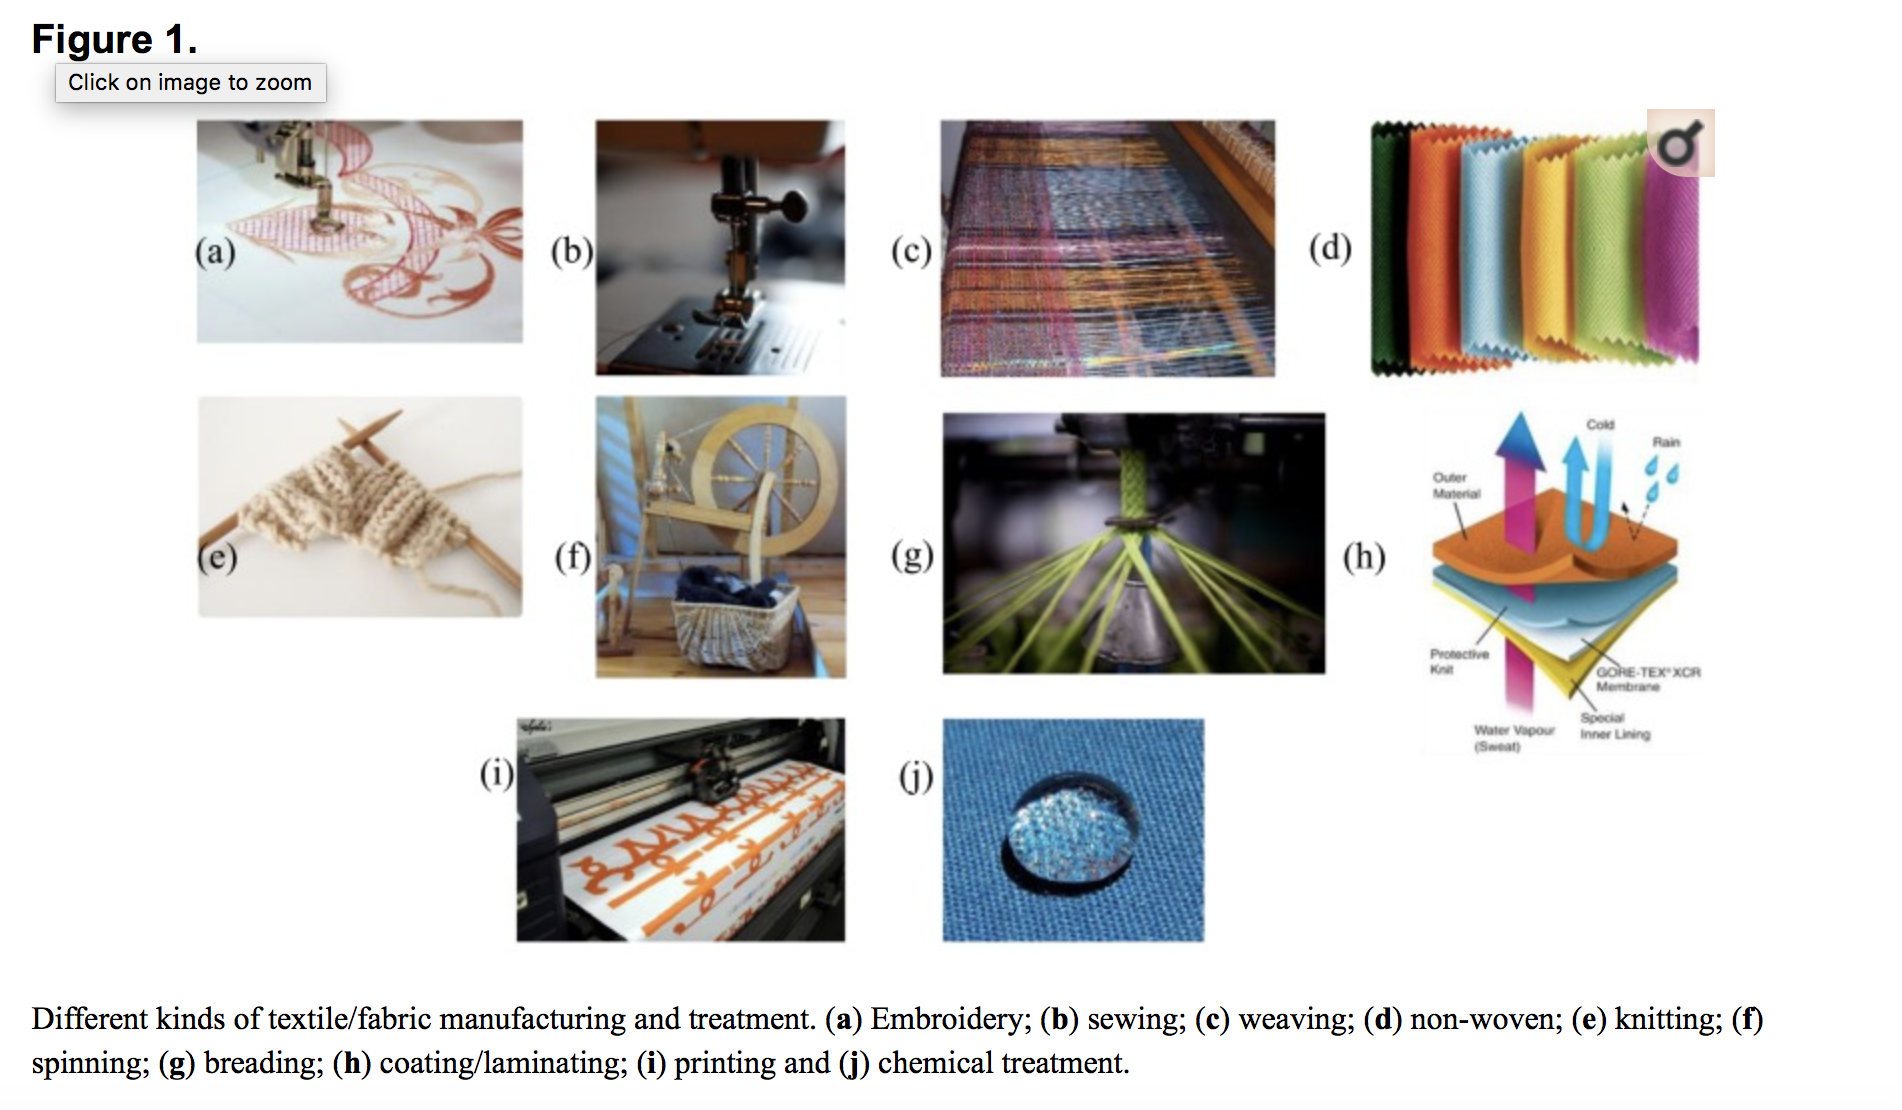 Integrating electronics and textiles: Innovation of the future